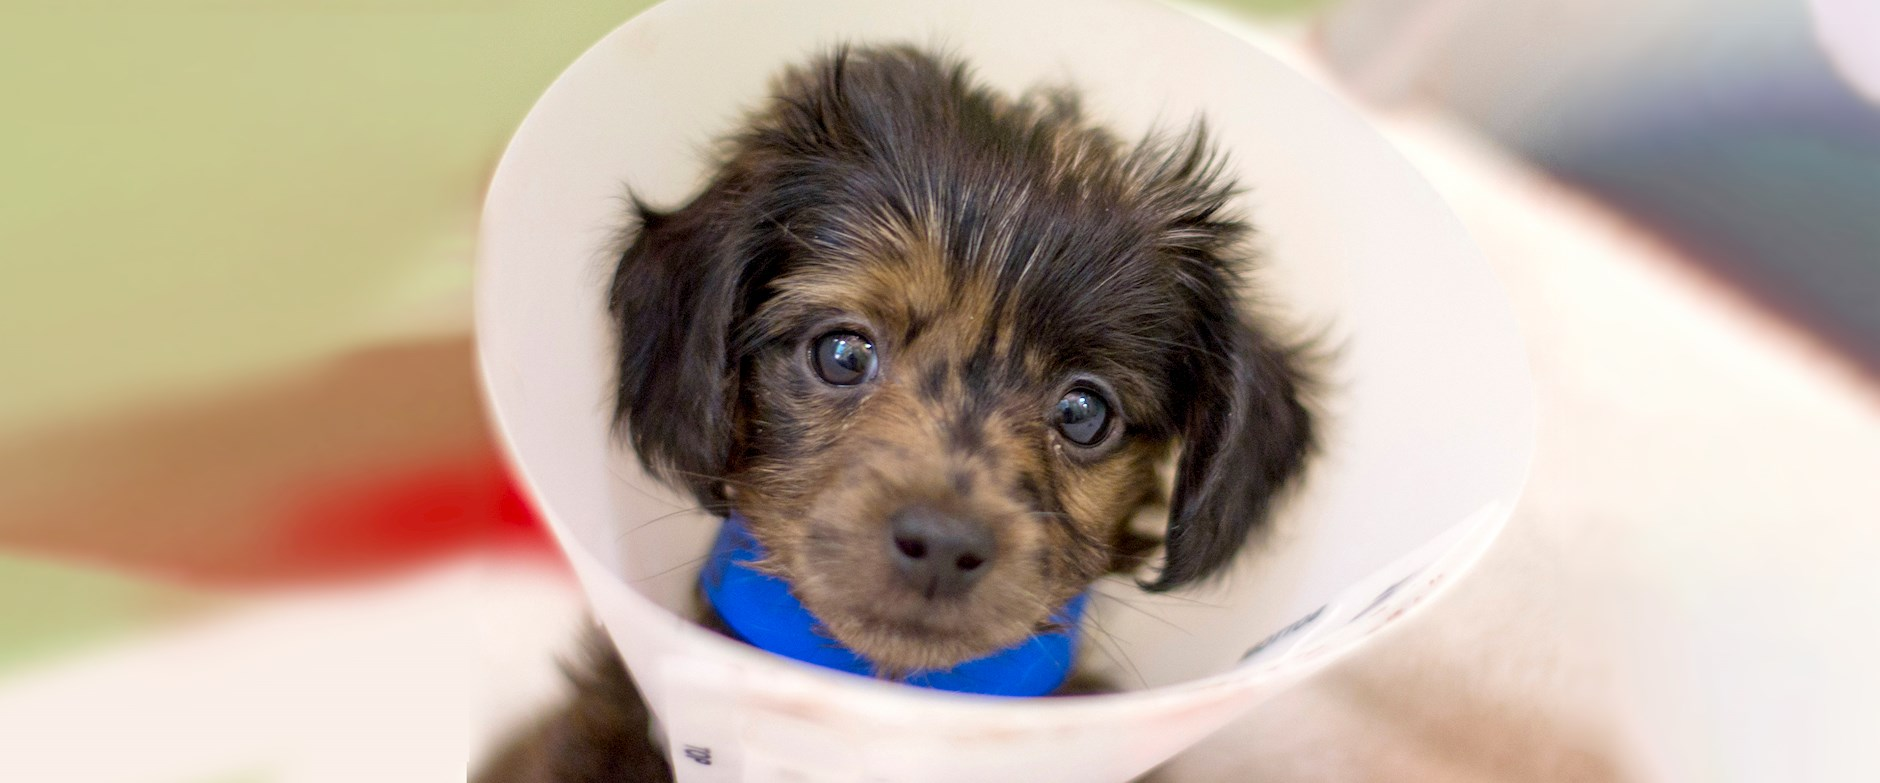 A small puppy with a medical cone around its neck